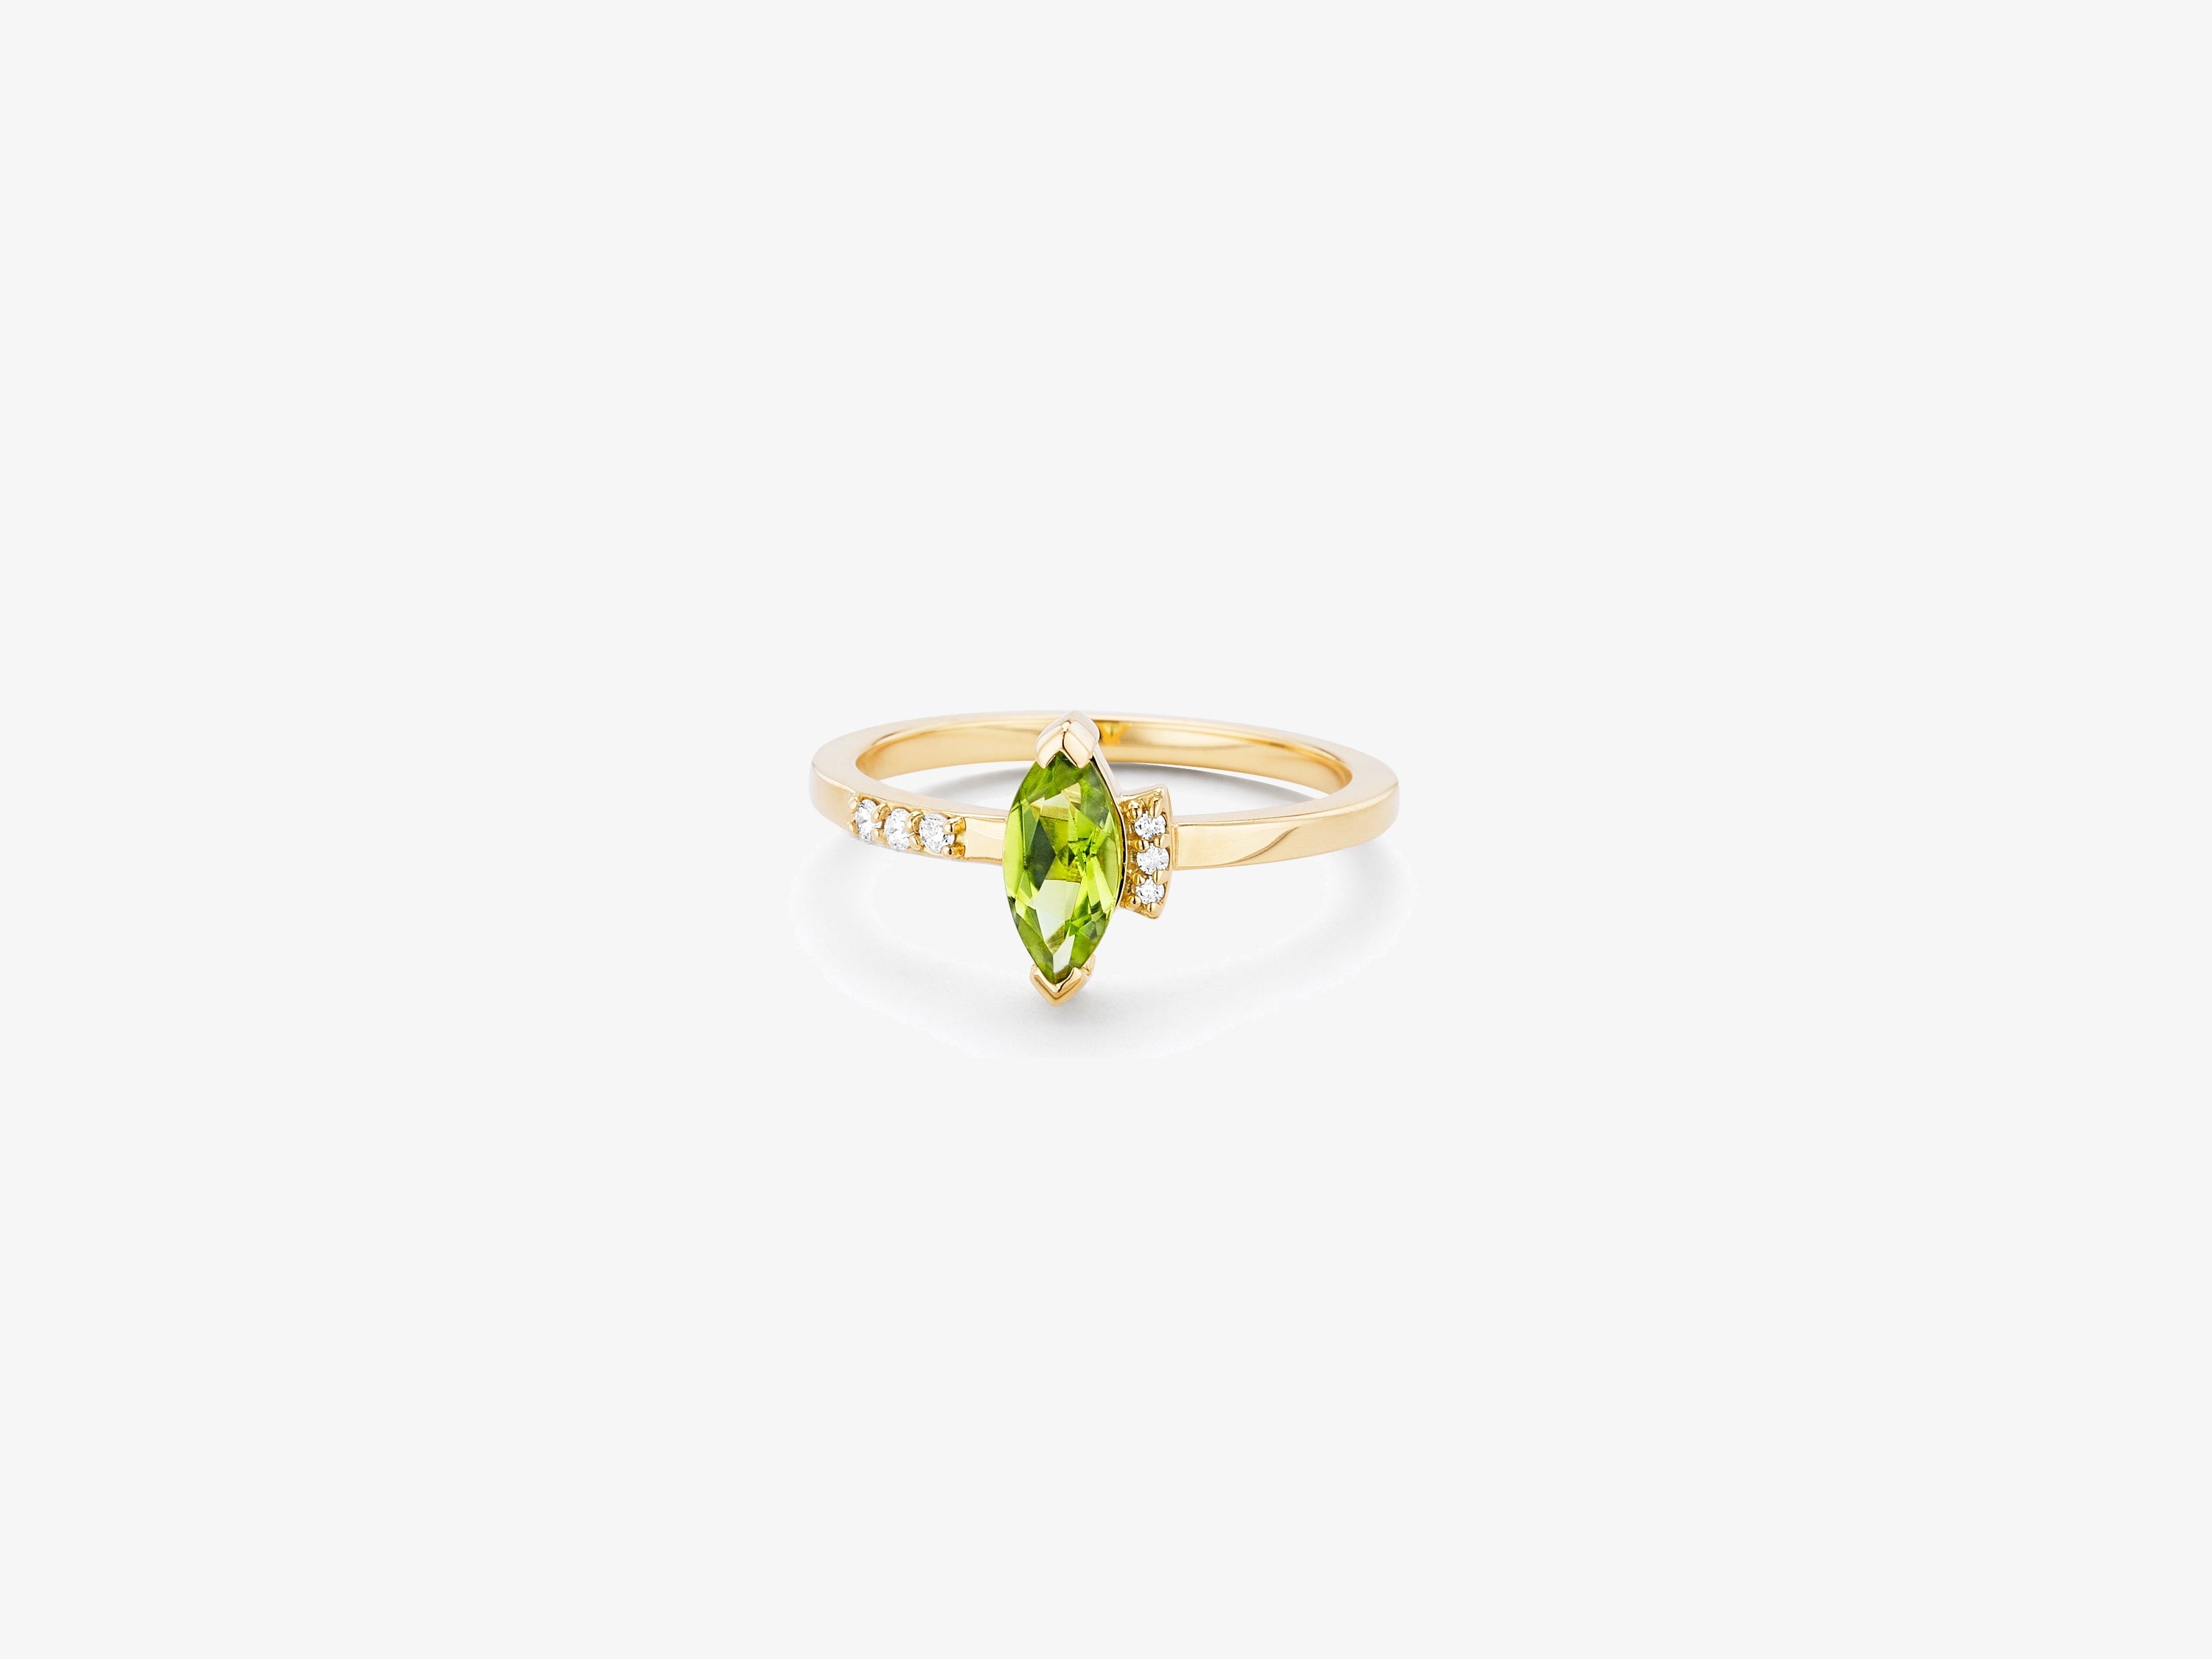 Sprinkle of Diamond Pave Band Ring with Marquise Gemstone Detail